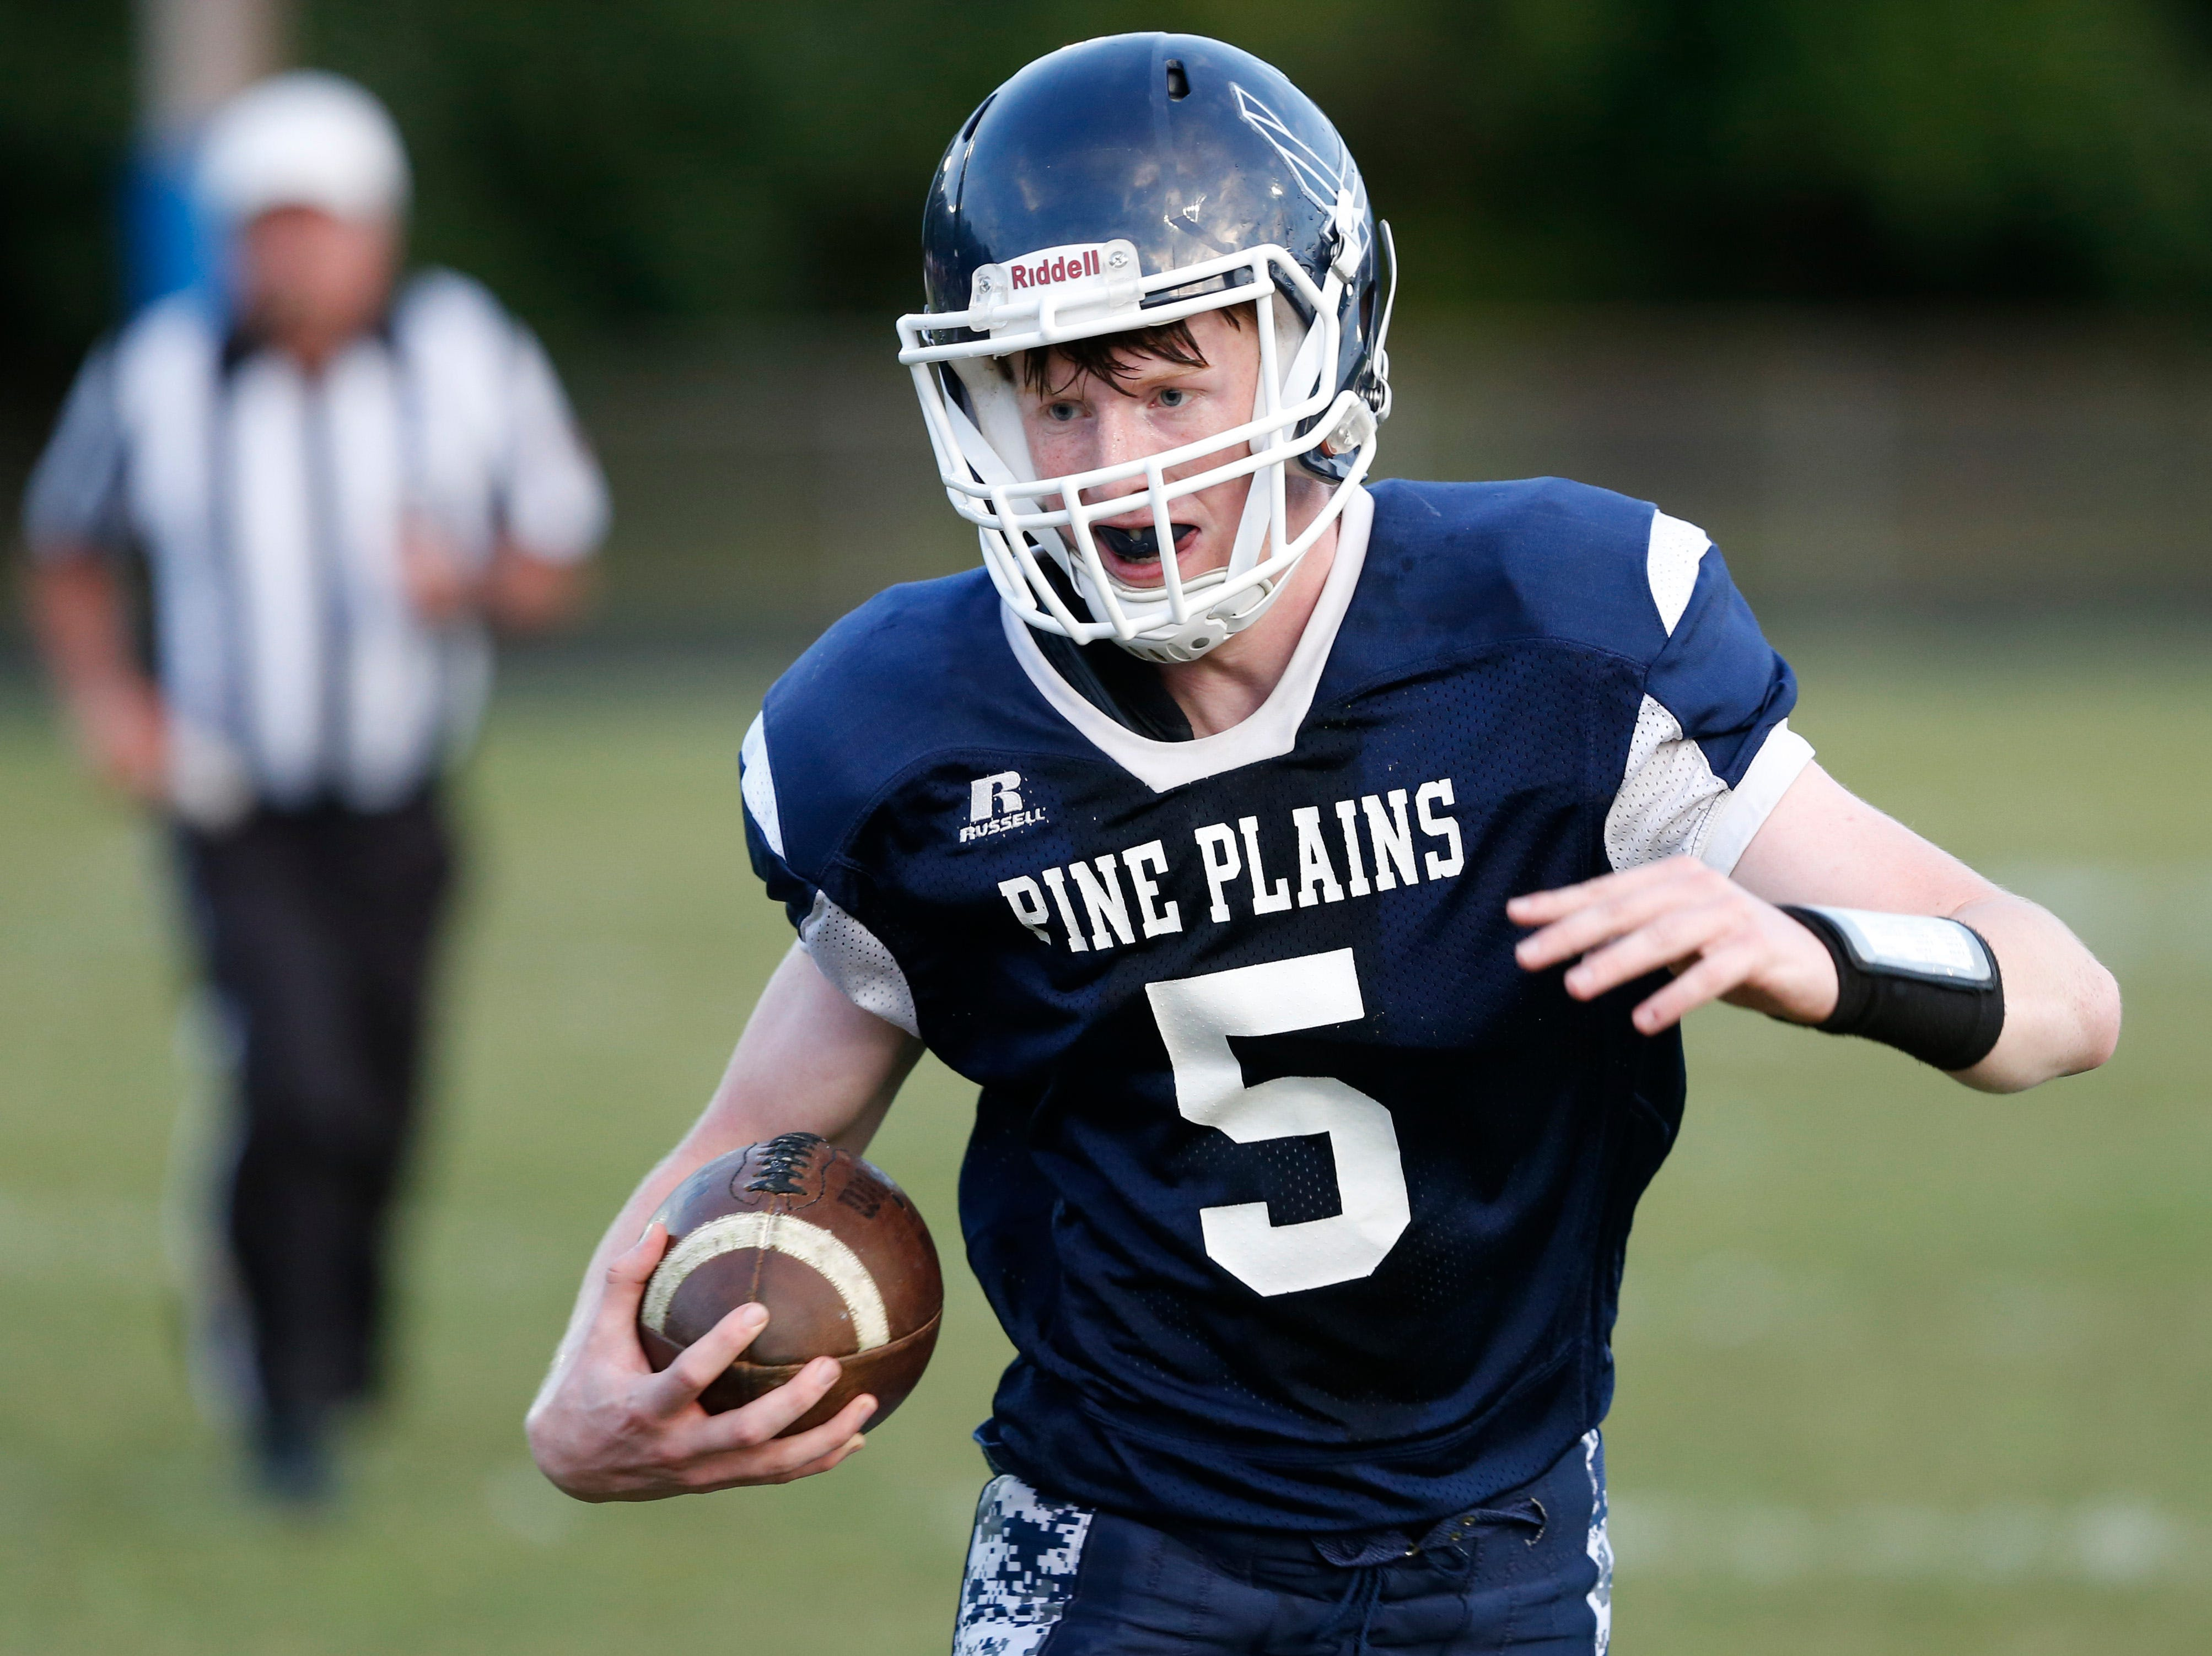 Pine Plains' Andrew Holsopple carries the ball during Friday's home gam versus Roscoe on September 7, 2018.